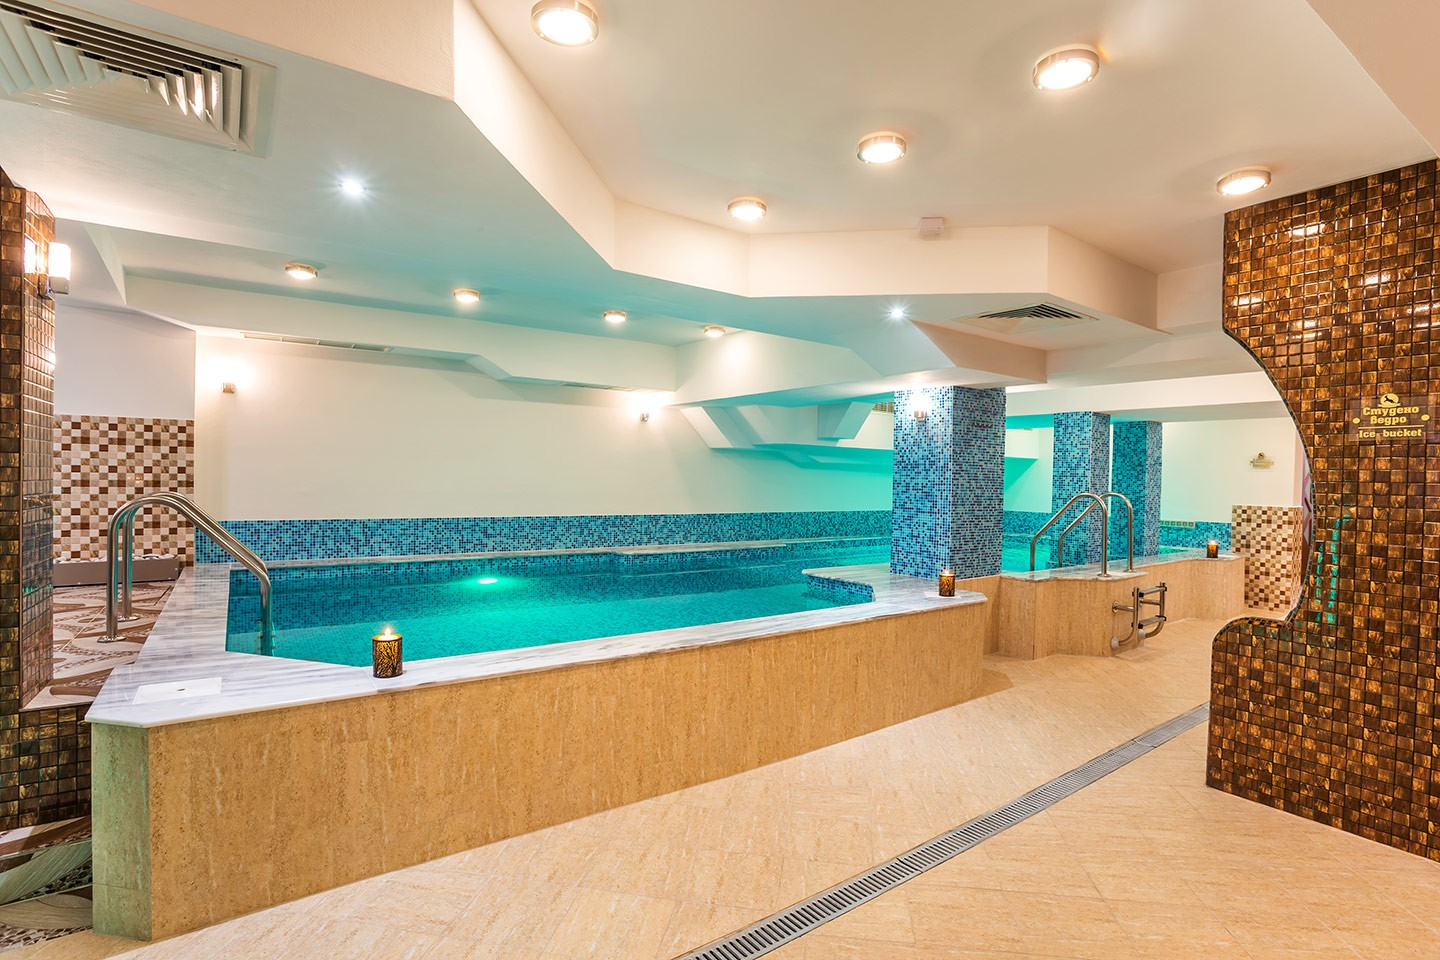 Mineral swimming pool